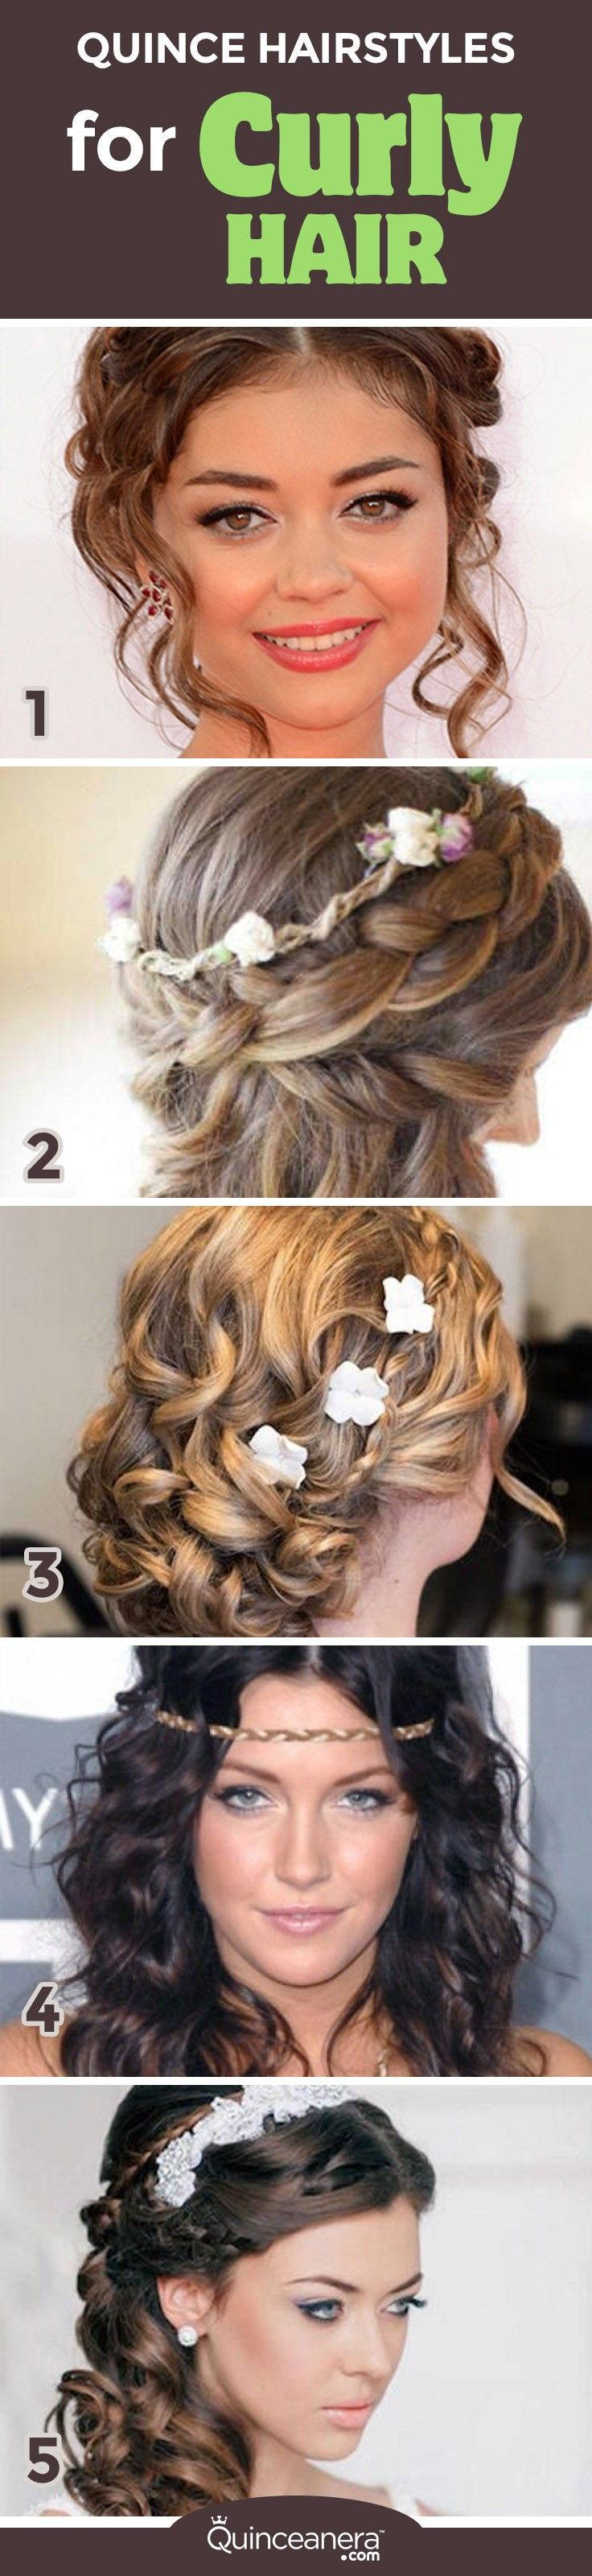 205 best Quinceanera Hairstyles images on Pinterest